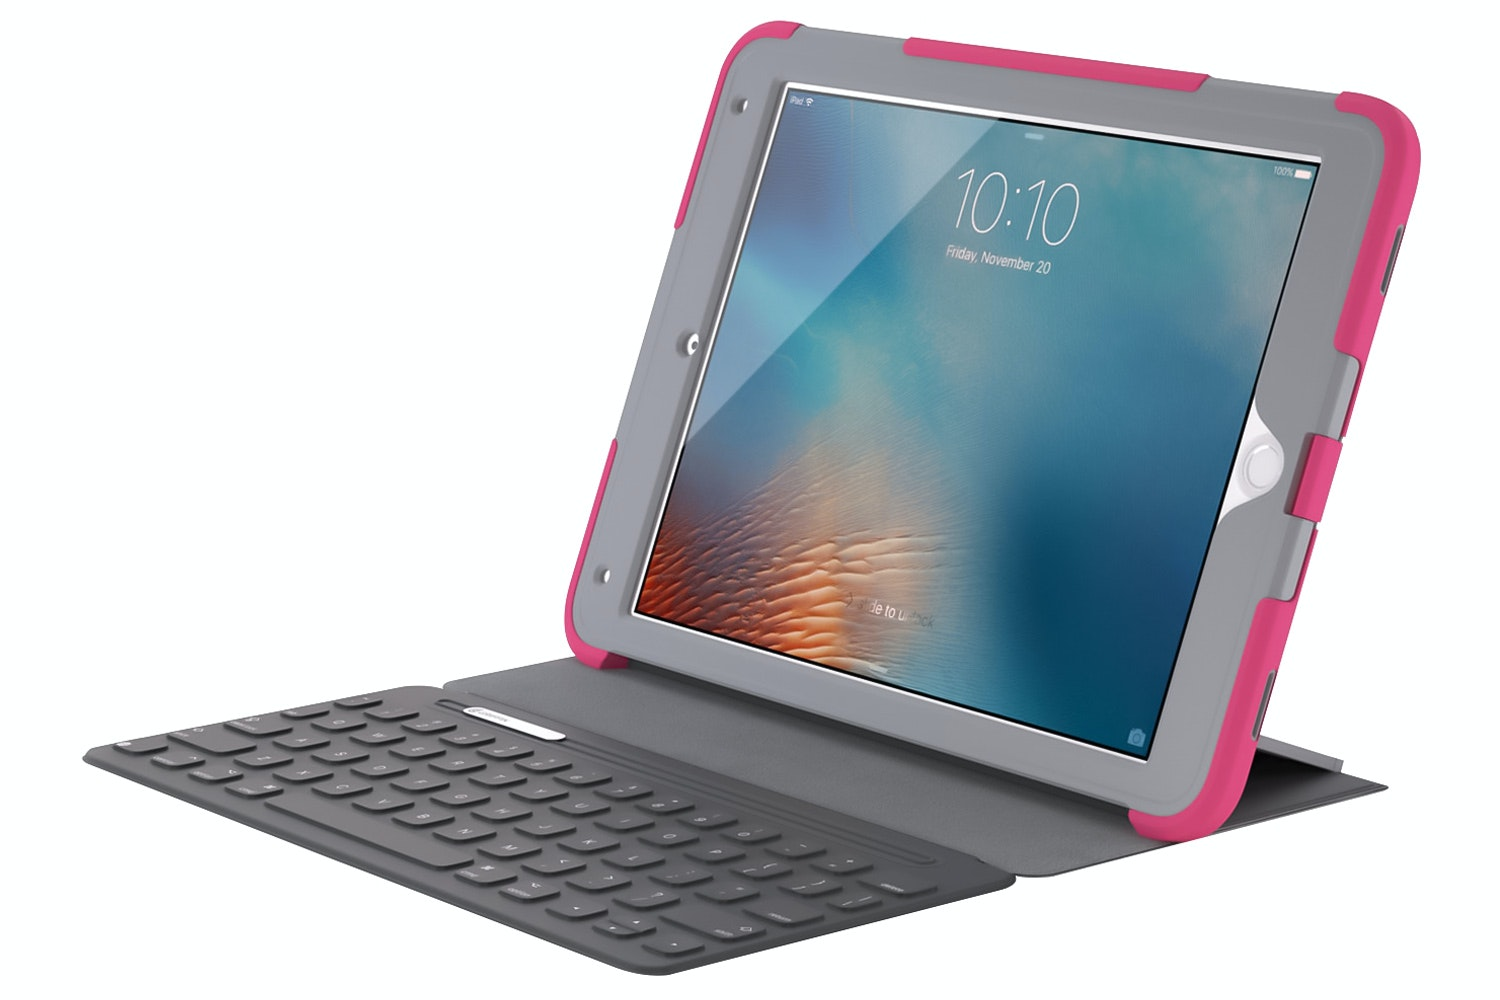 Griffin Survivor Slim Case For iPad Pro 9.7"